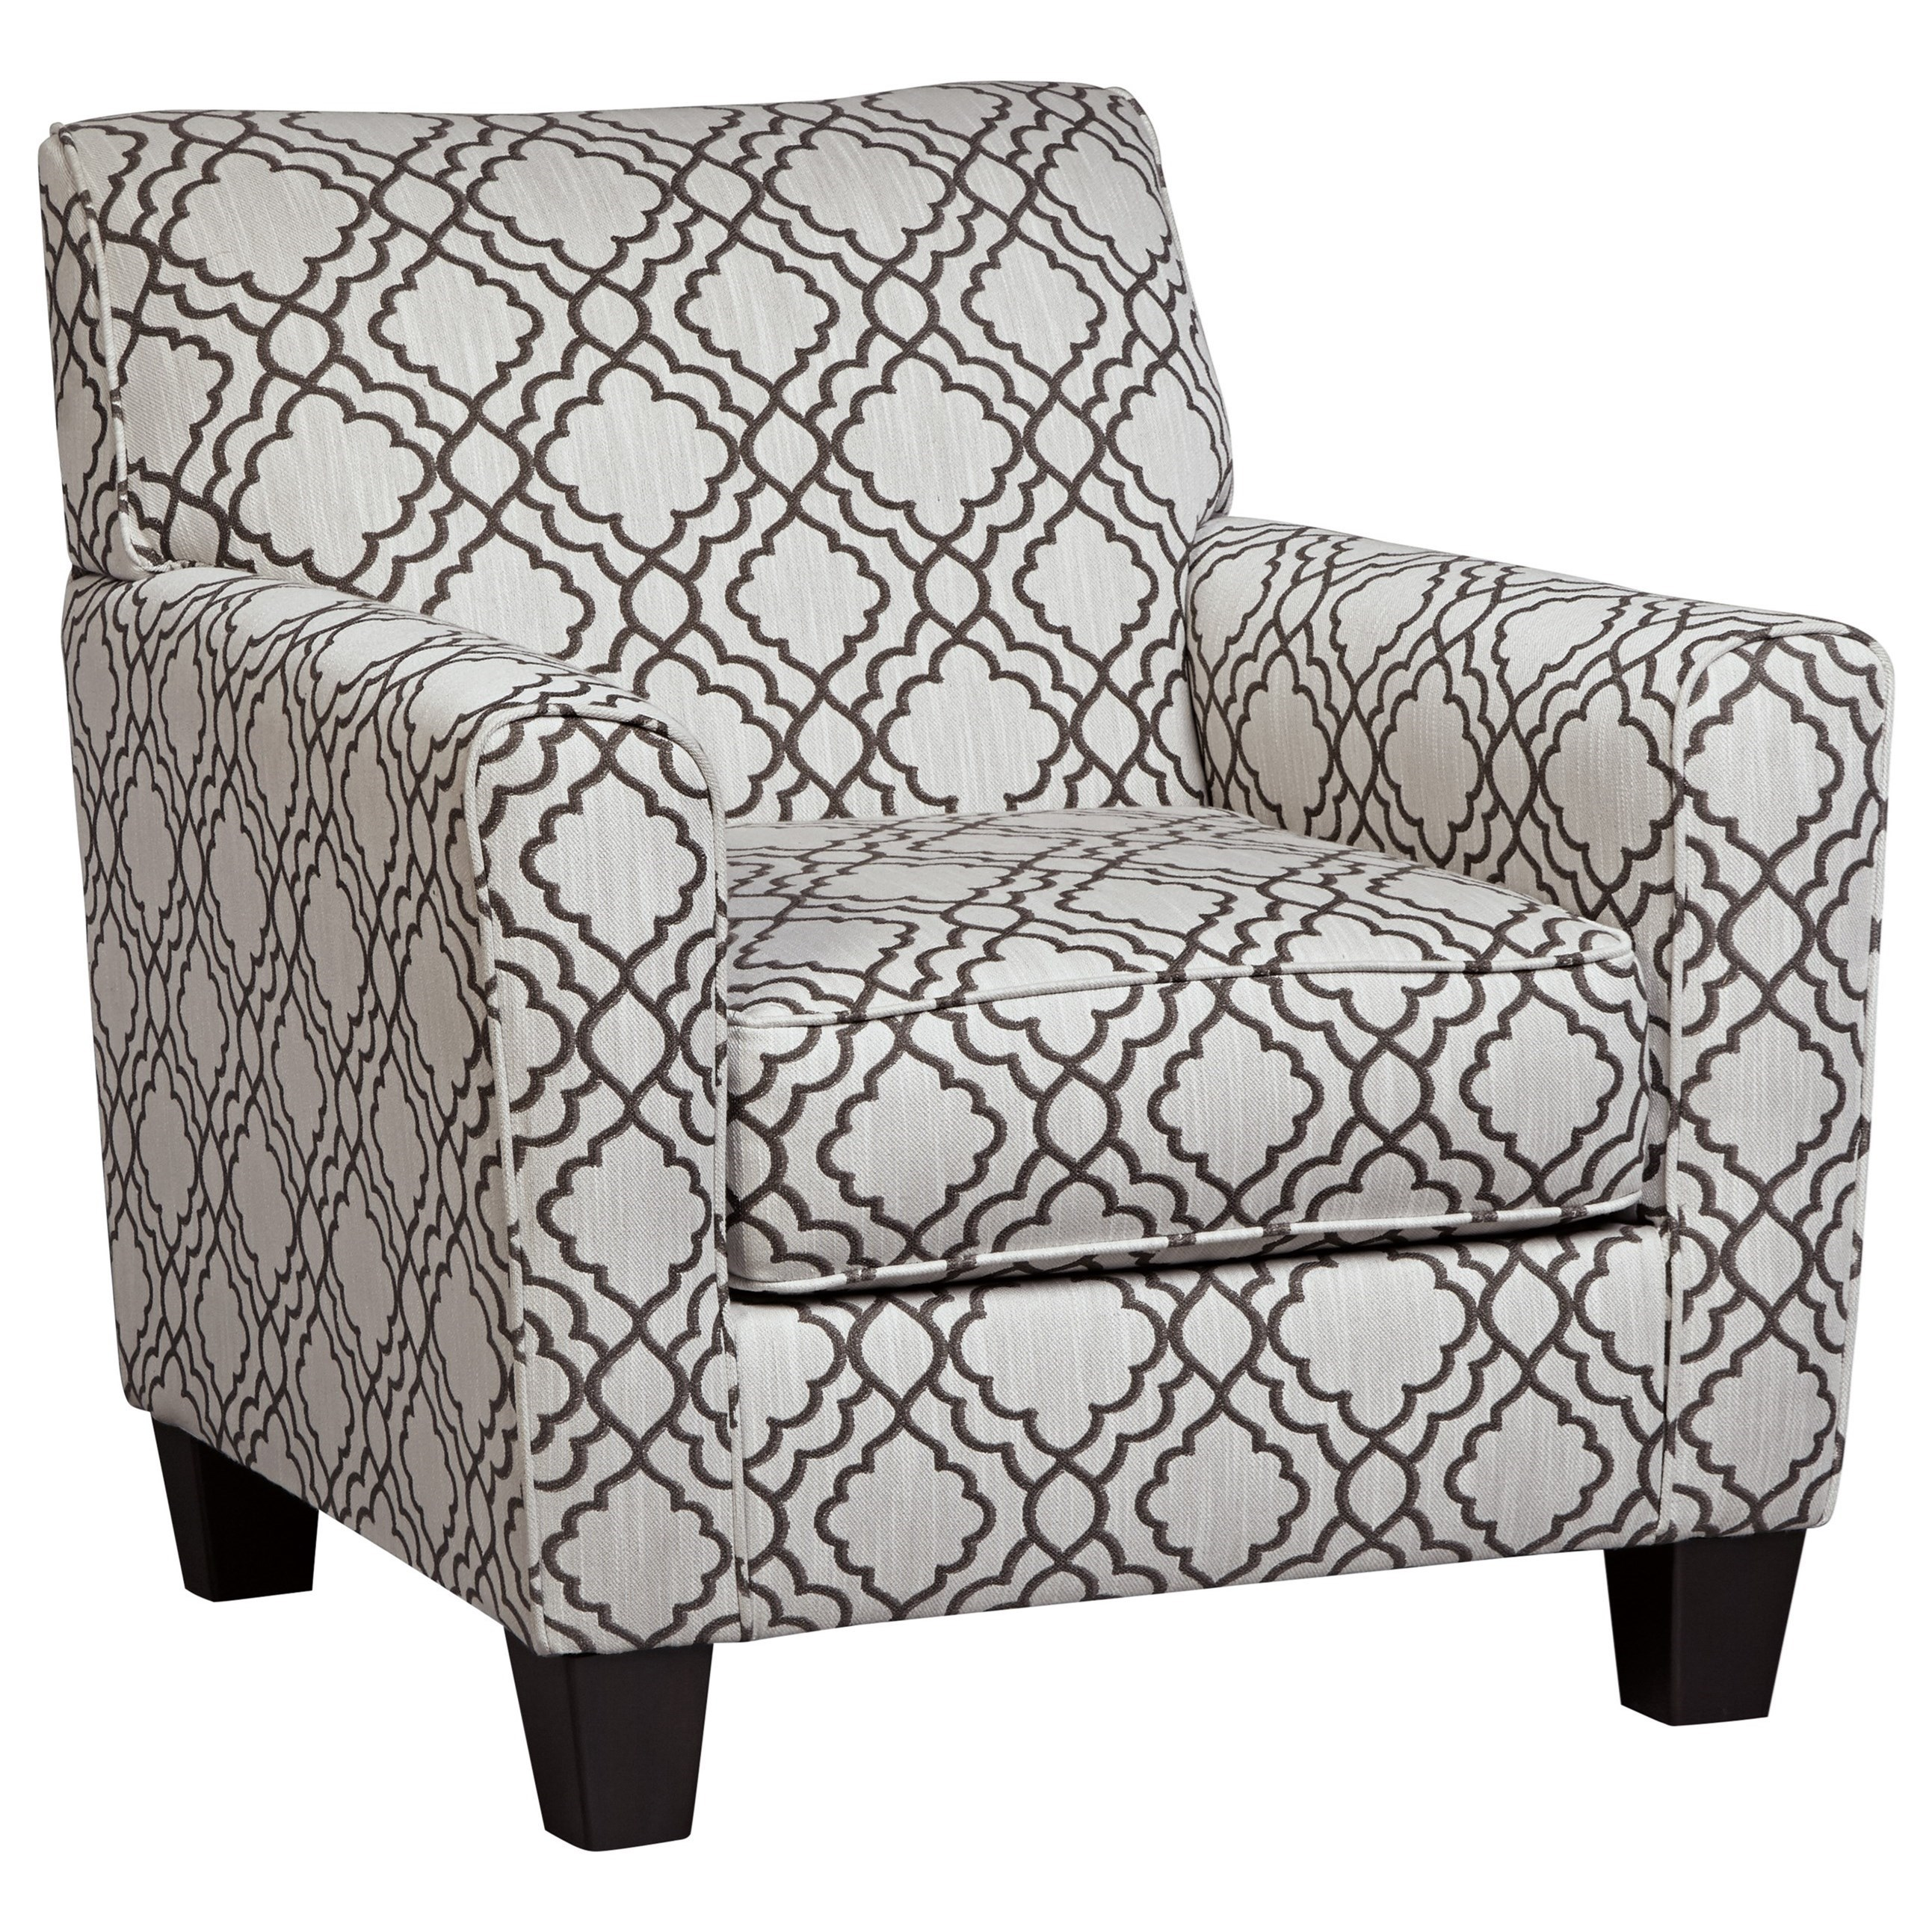 Ashley Furniture Farouh 1370121 Accent Chair With Quatrefoil Lattice Fabric    Lapeer Furniture U0026 Mattress Center   Upholstered Chairs